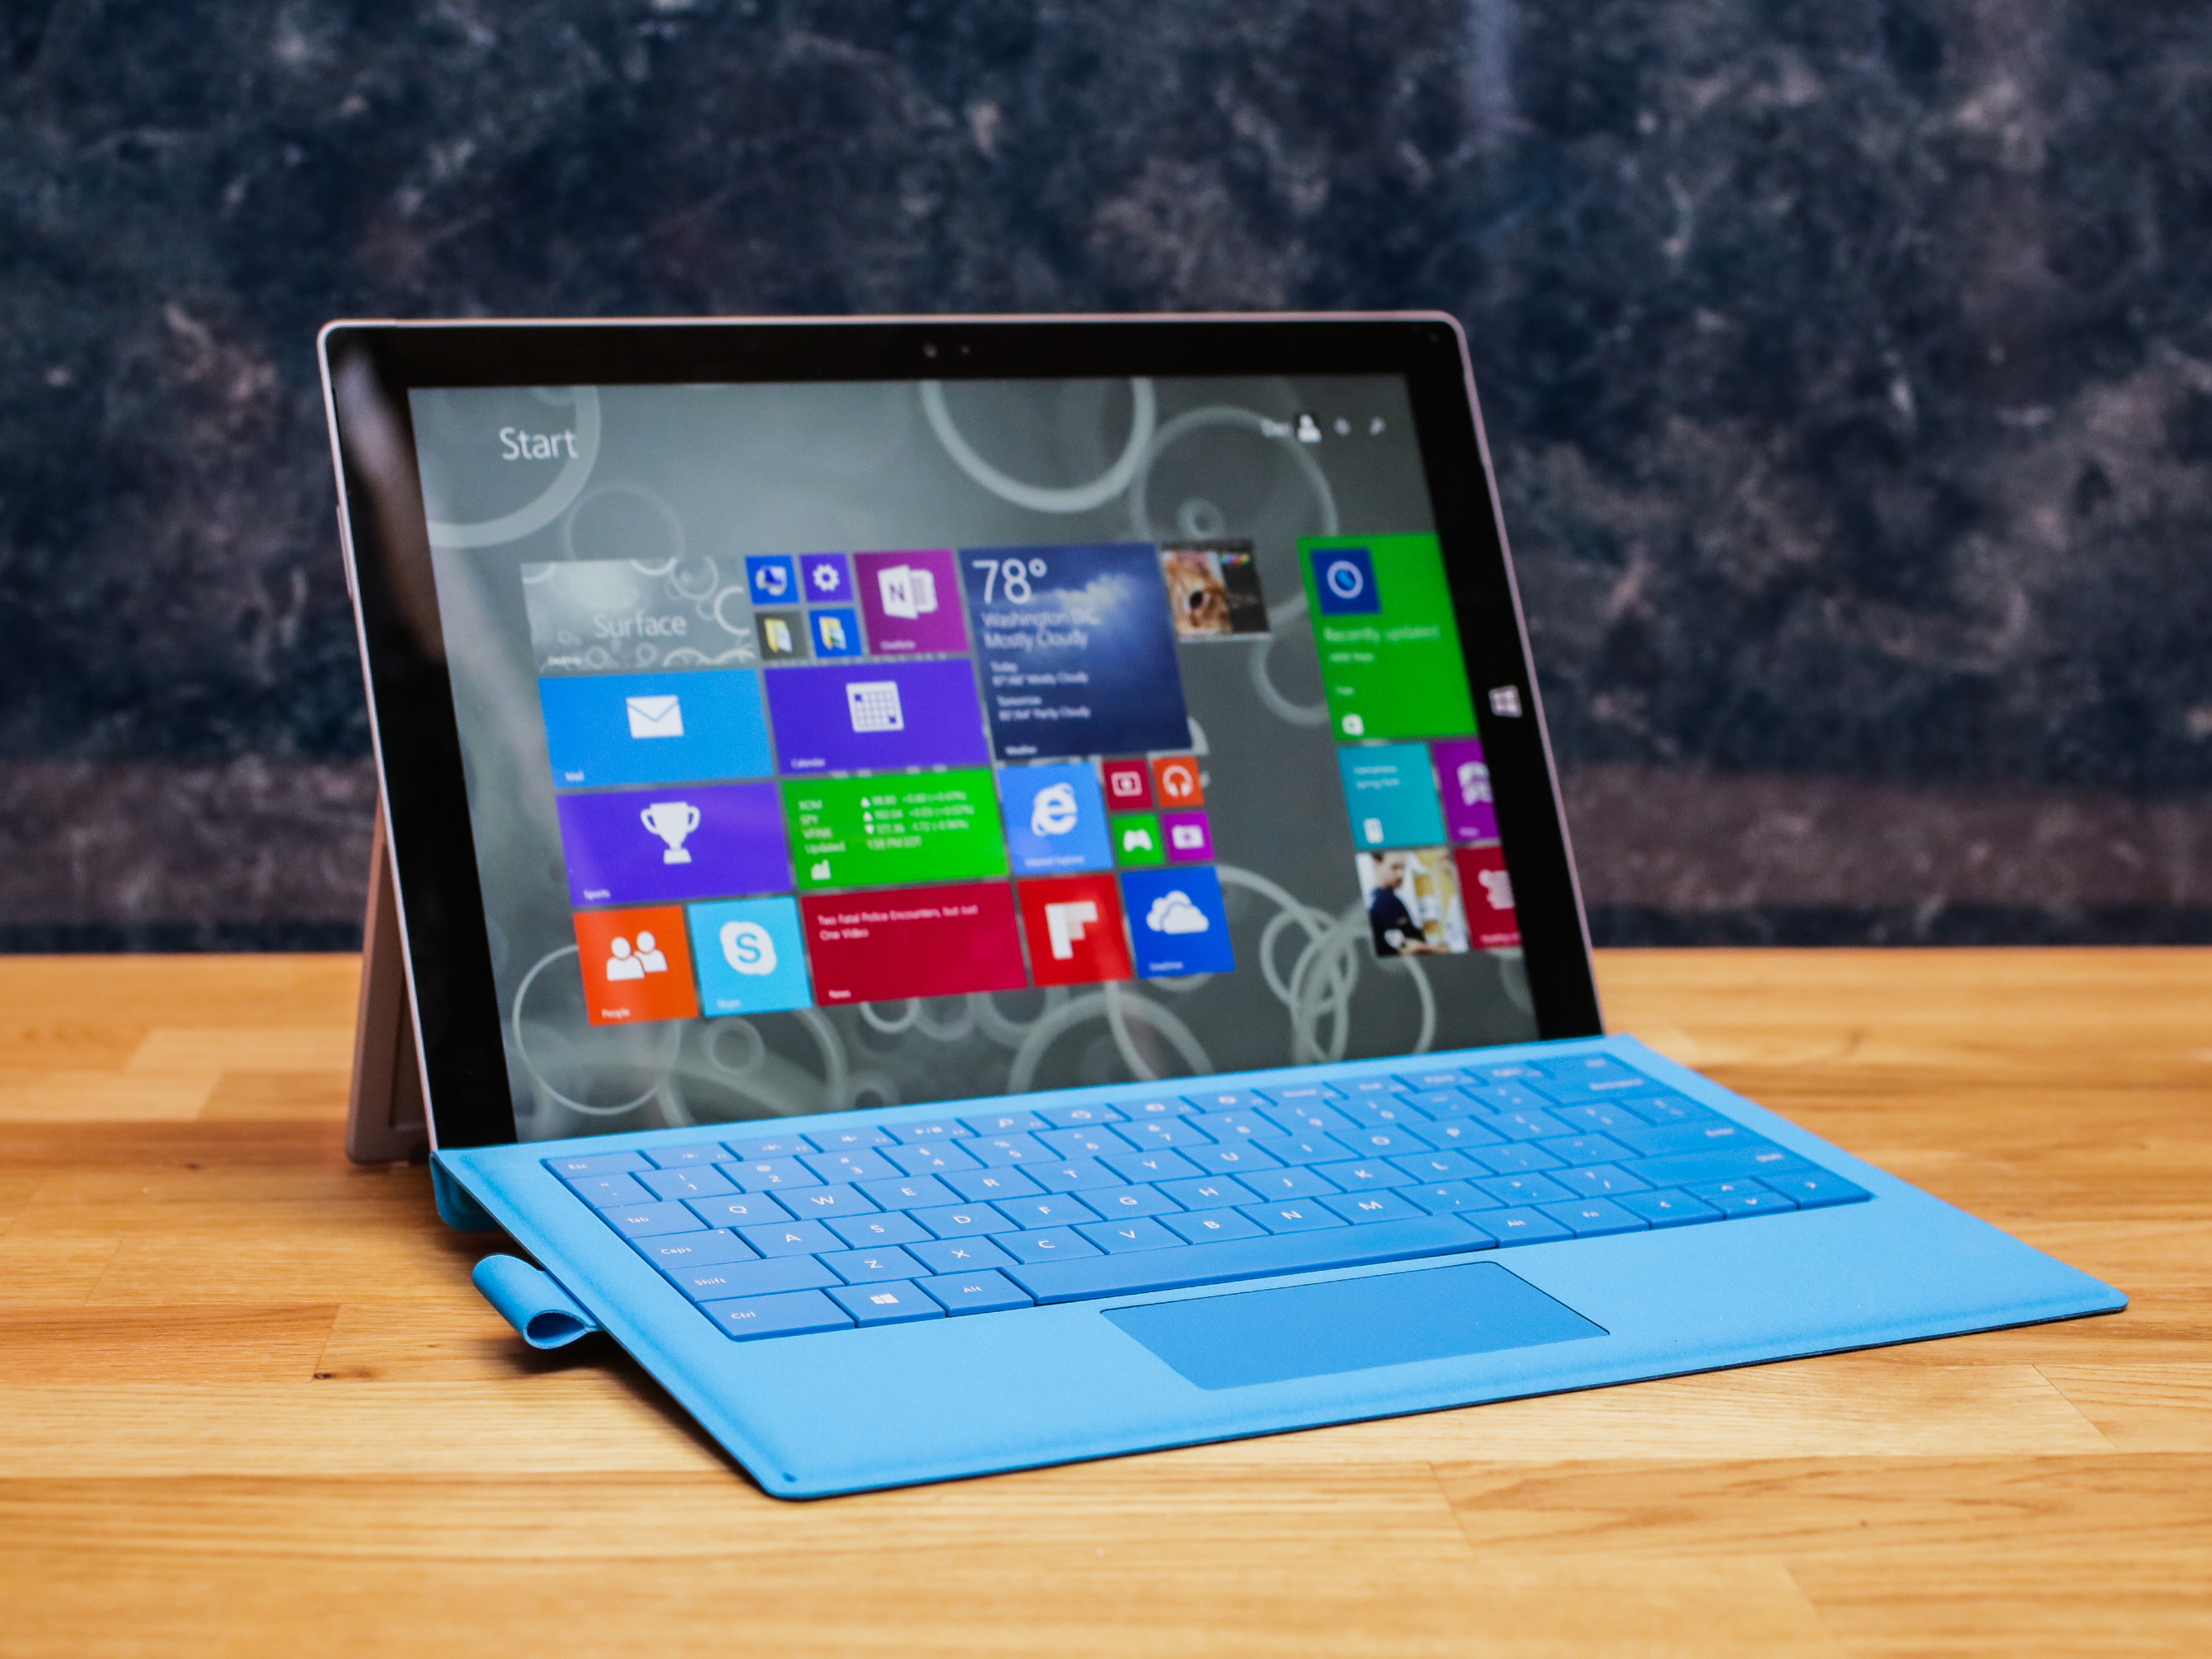 """<p>No one enjoys change. Moving from an earlier version of Windows to&nbsp;<a href=""""http://www.cnet.com/products/microsoft-windows-8-1/"""">Windows 8.1</a> can be difficult, but it has to be done. Mainstream support for Windows 7 is&nbsp;<a href=""""http://www.cnet.com/news/microsoft-warns-support-ending-for-popular-windows-products/?tag=mncol;txt"""">coming to an end in early 2015</a>, and Microsoft is hoping to migrate existing users to its newest operating system.</p><p>Still need to upgrade to Windows 8.1 from an earlier version? Read&nbsp;<a href=""""http://www.cnet.com/how-to/how-to-upgrade-to-windows-8-1-from-earlier-versions-of-windows/"""">this guide to learn how to do so</a>. As for those of you who have already made the switch, we've compiled a list of the top tips to help make your Windows 8.1 experience more enjoyable.</p>"""